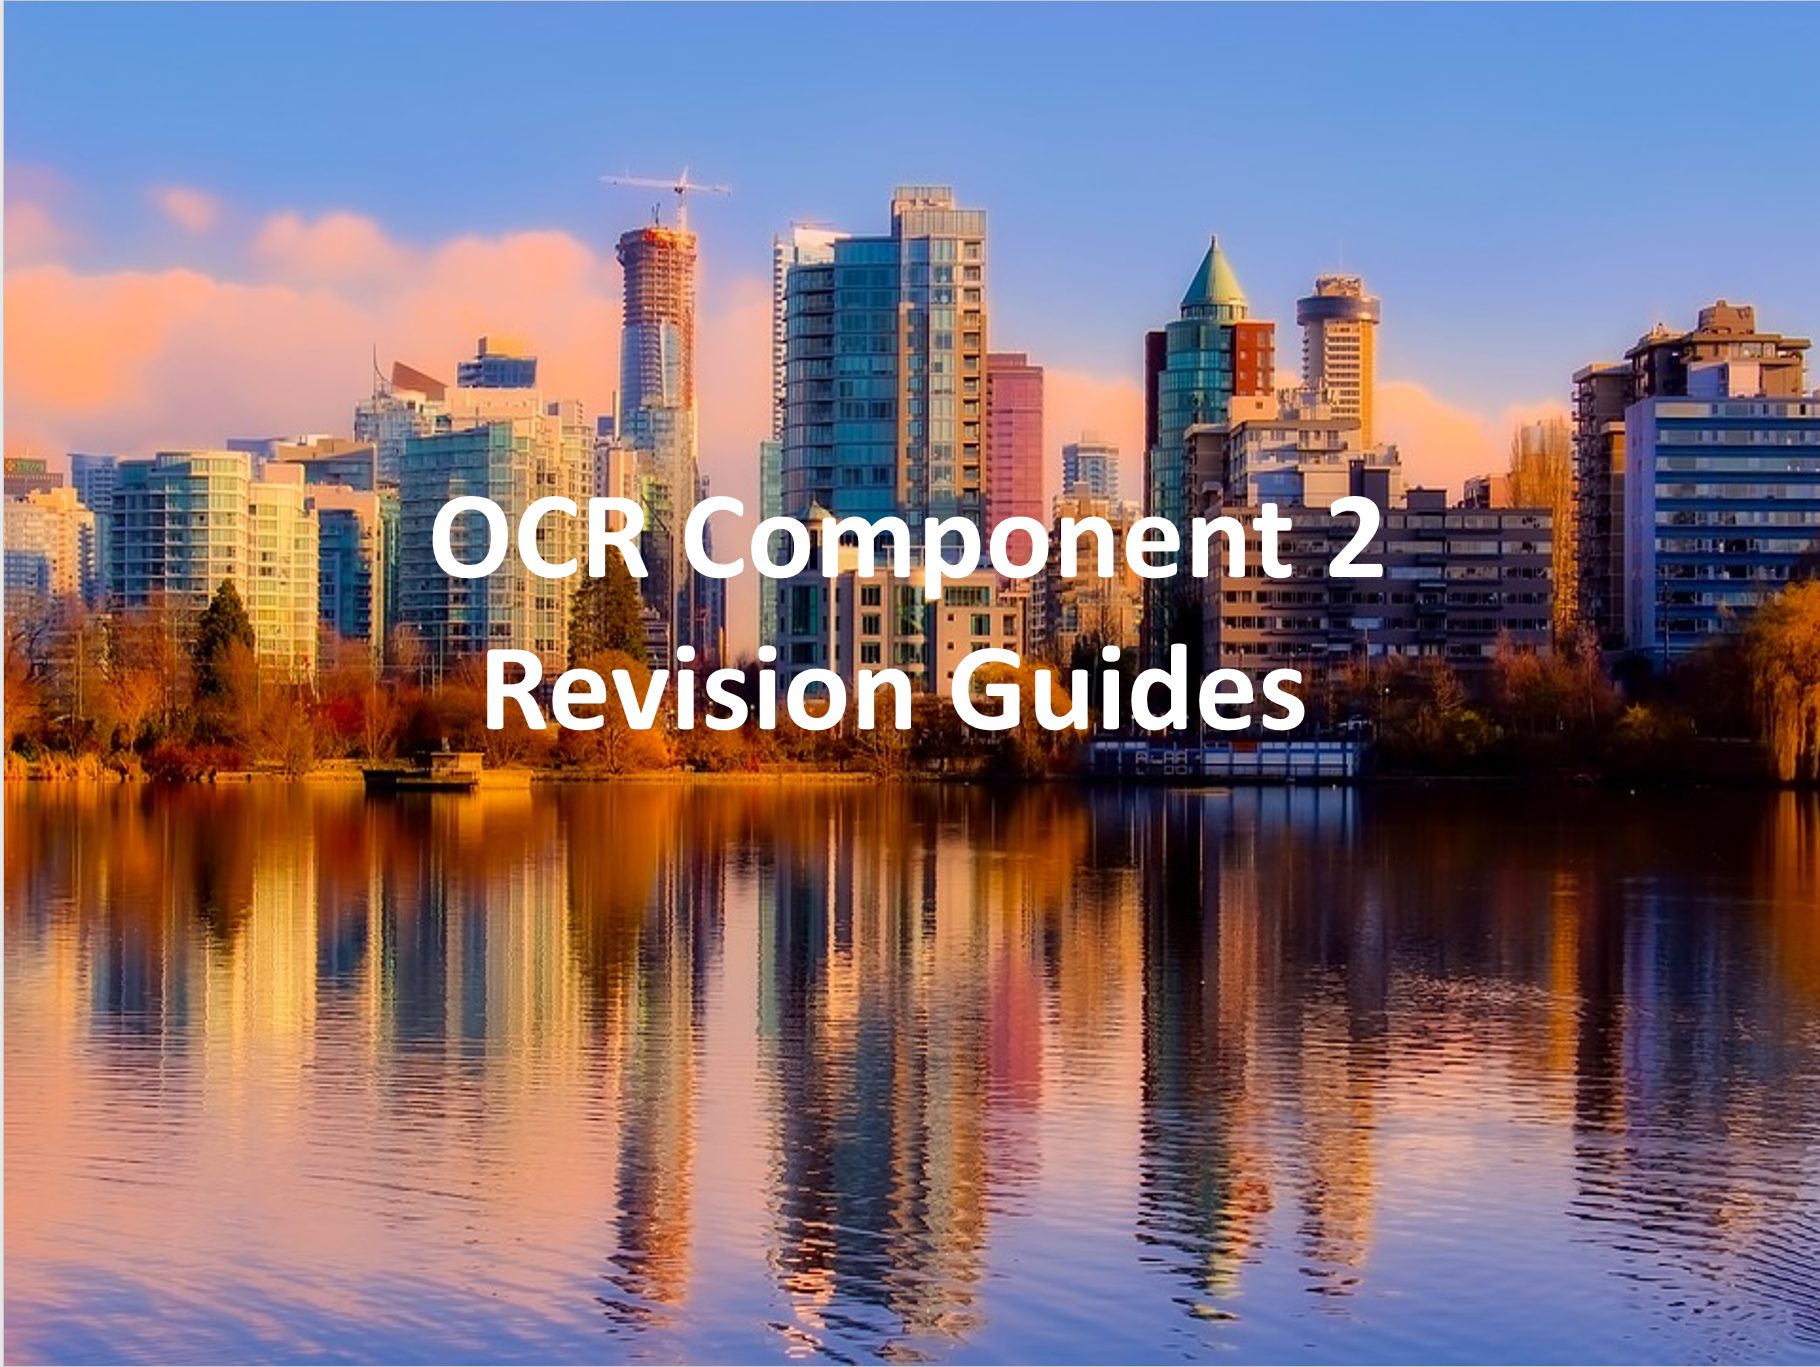 OCR Component 2 Revision Guides